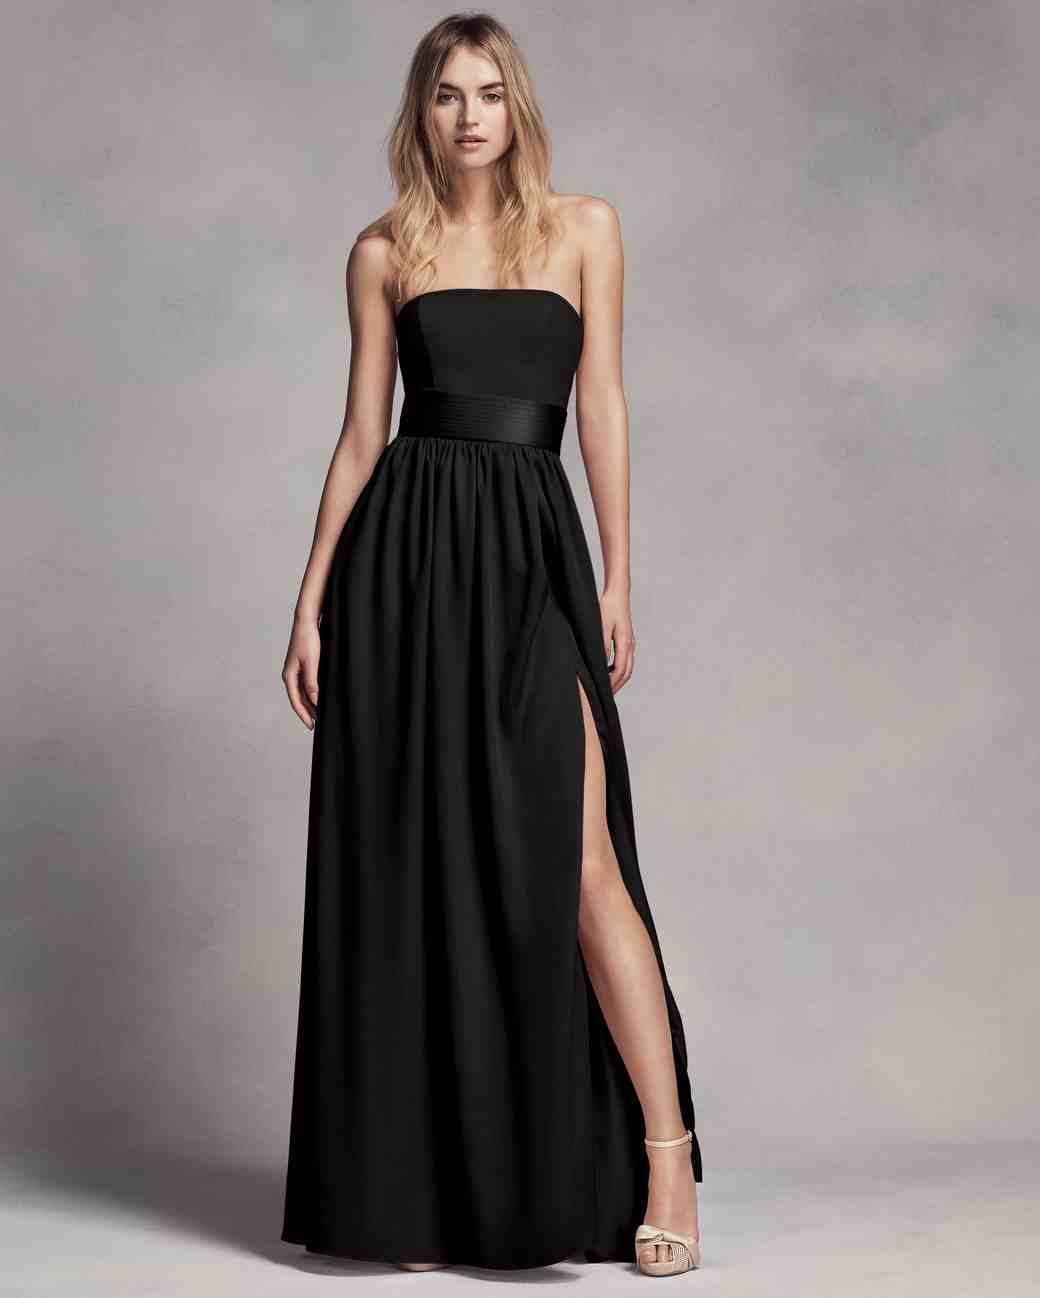 Bridesmaid Dresses: Chic Black Bridesmaid Dresses